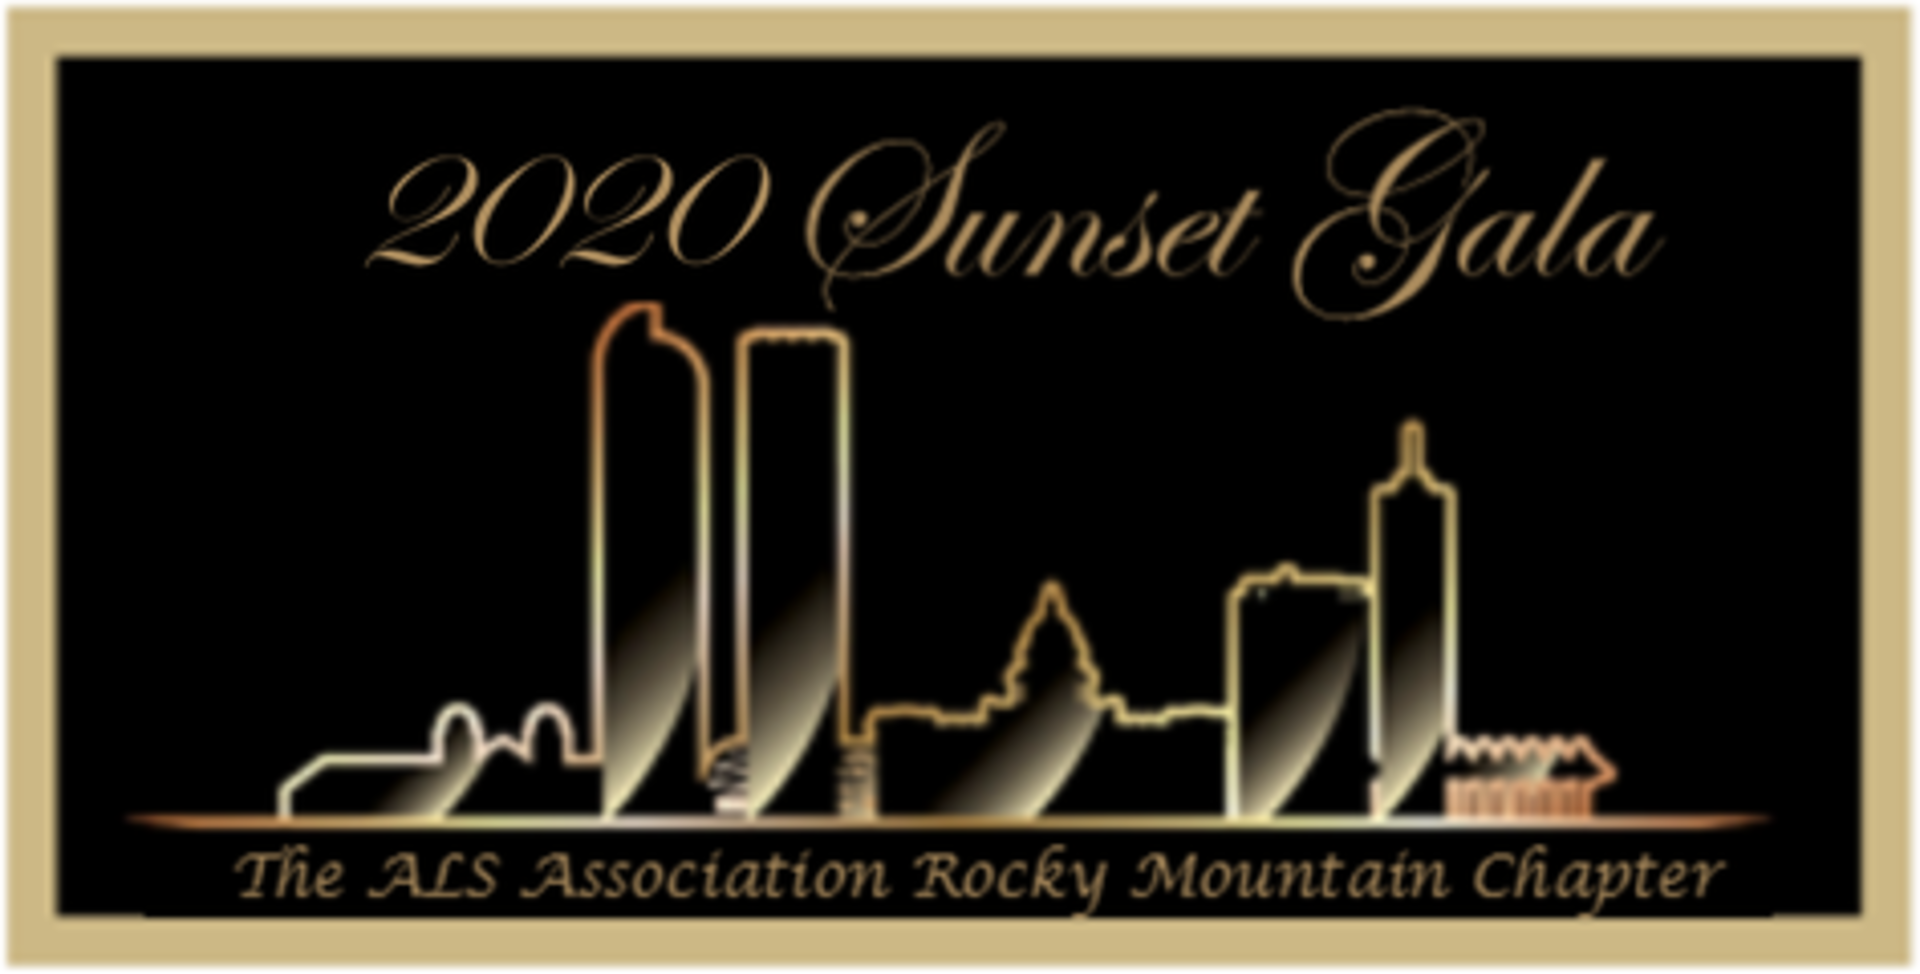 2020 Sunset Gala ~ Champions for Care & a Cure